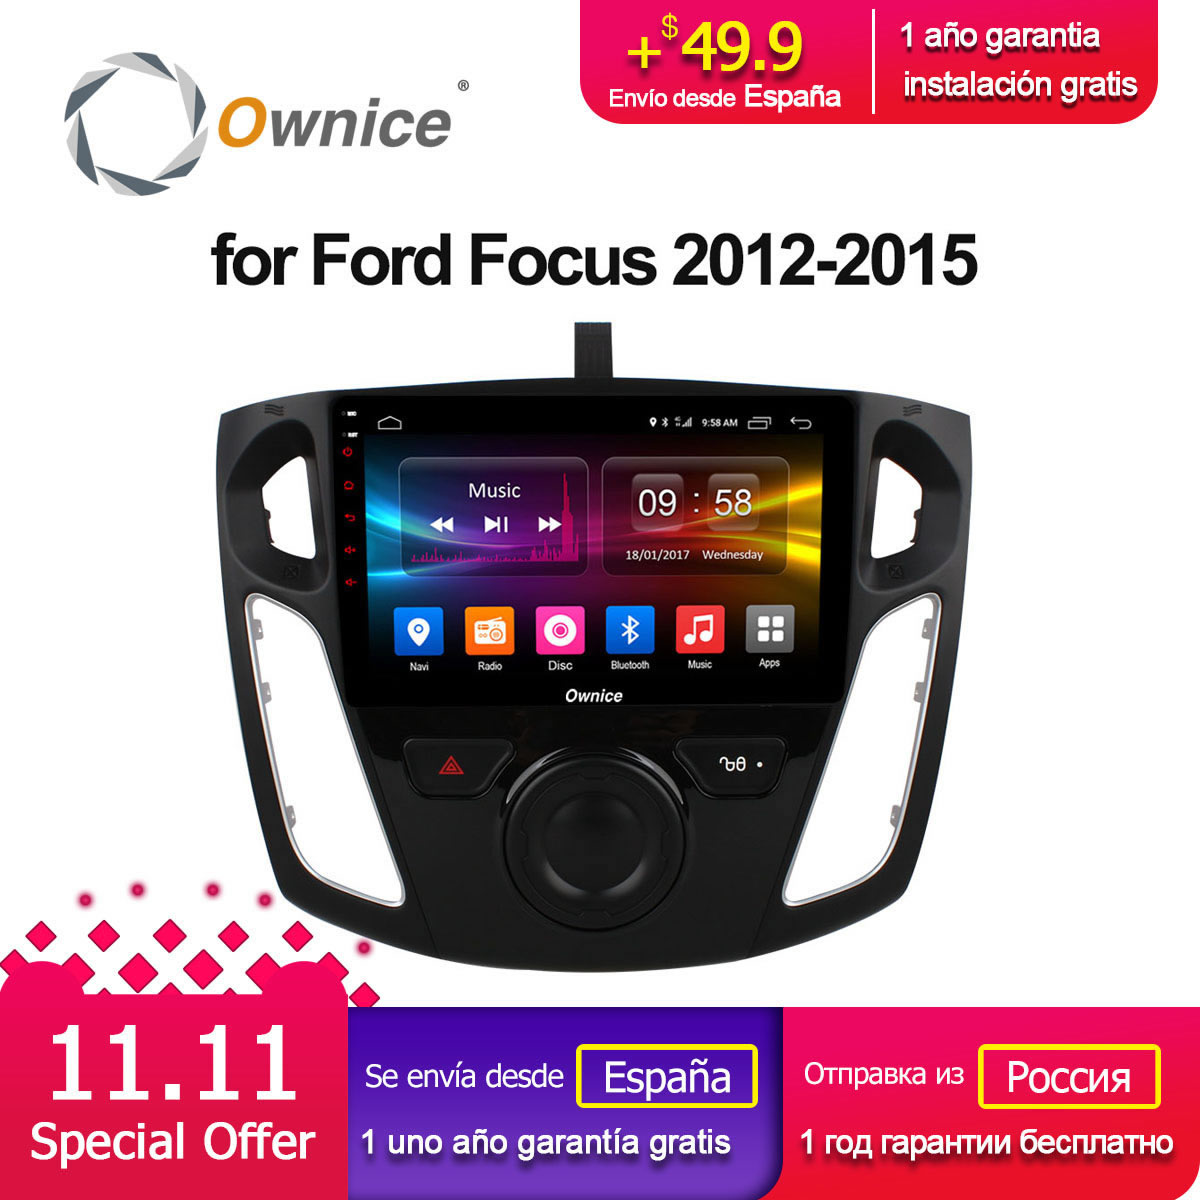 Ownice C500+ G10 Octa 8 Core Android 8.1 Car Radio Player GPS Navi for Ford Focus 3 2012 2013 2014 2015 Support DVD 4G SIM Card ownice c500 4g sim lte octa 8 core android 6 0 for kia ceed 2013 2015 car dvd player gps navi radio wifi 4g bt 2gb ram 32g rom